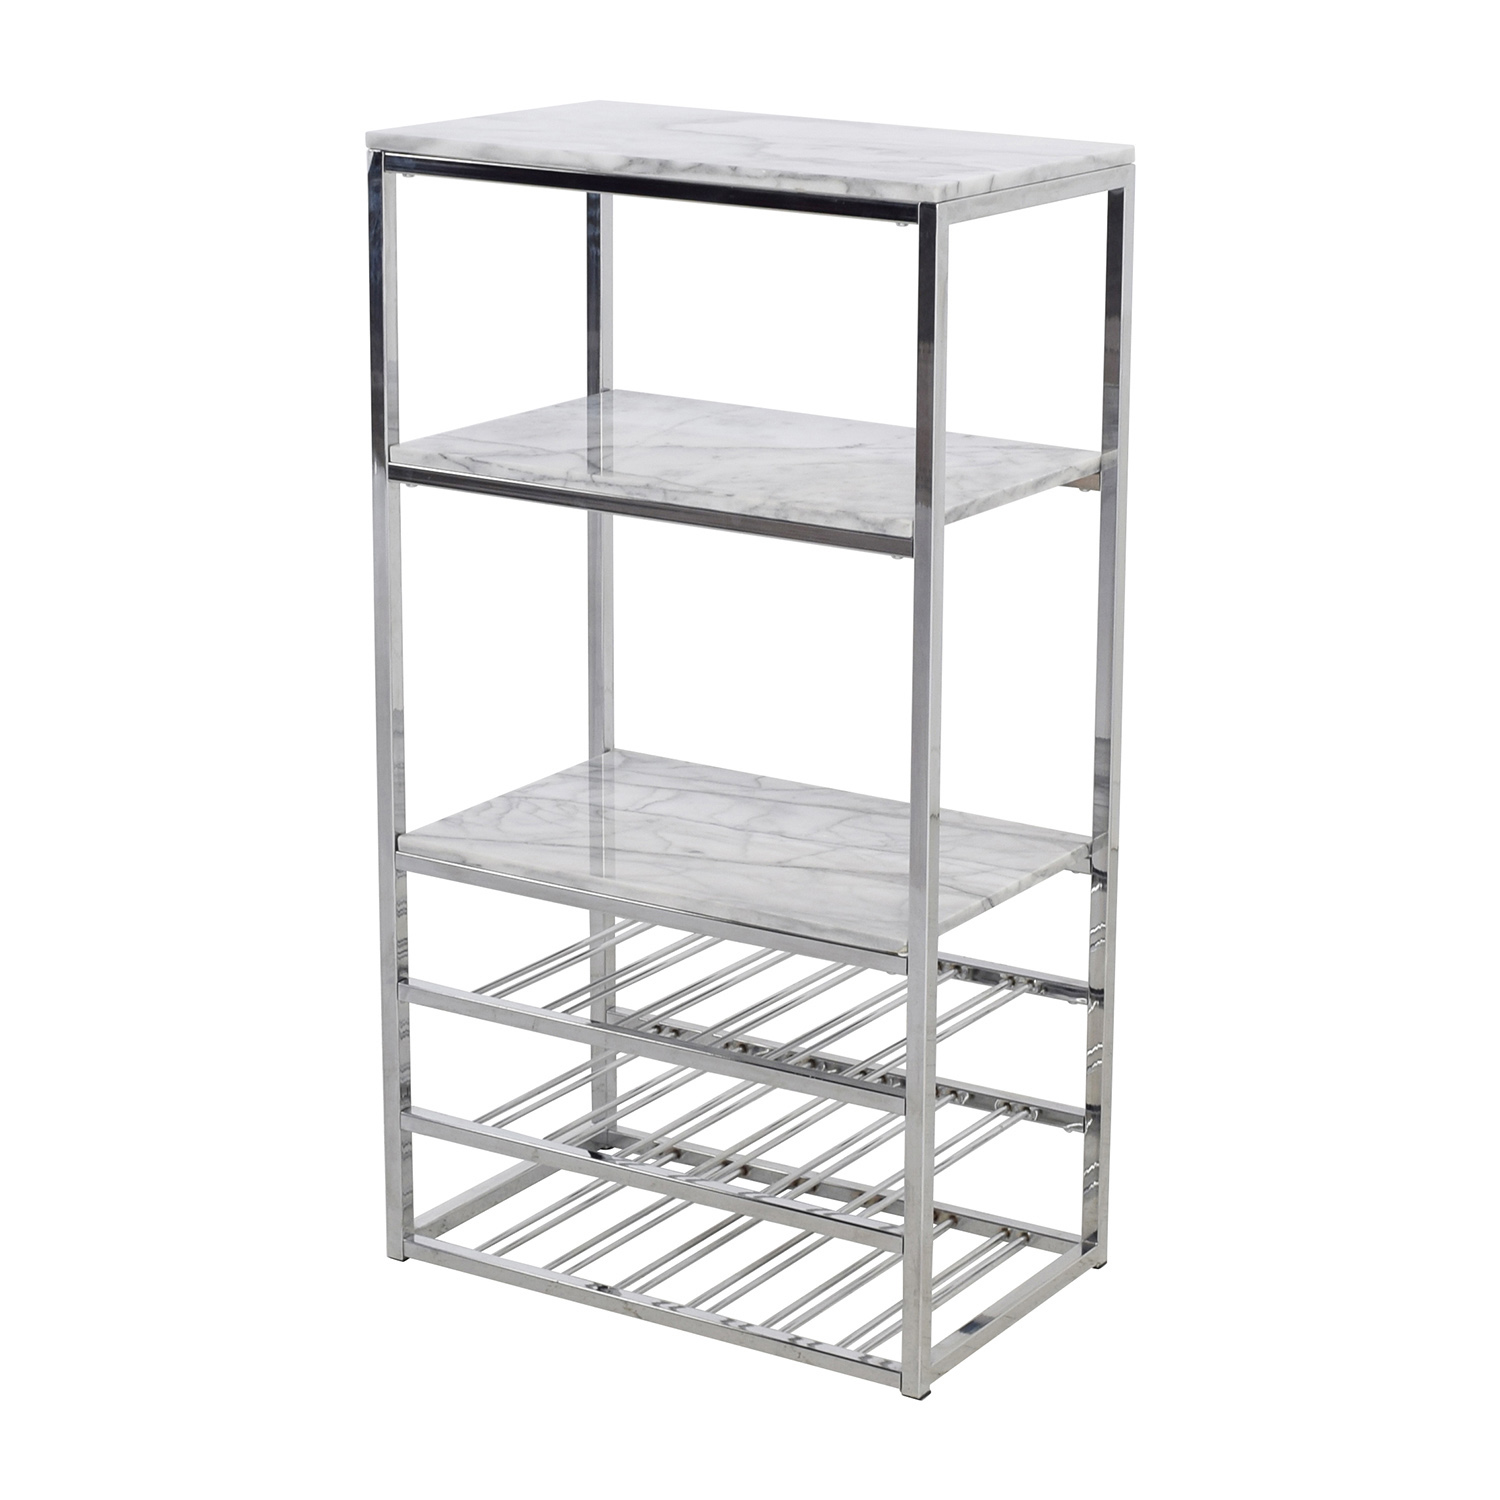 73 Off Crate Barrel Crate Barrel Marble And Silver Chrome